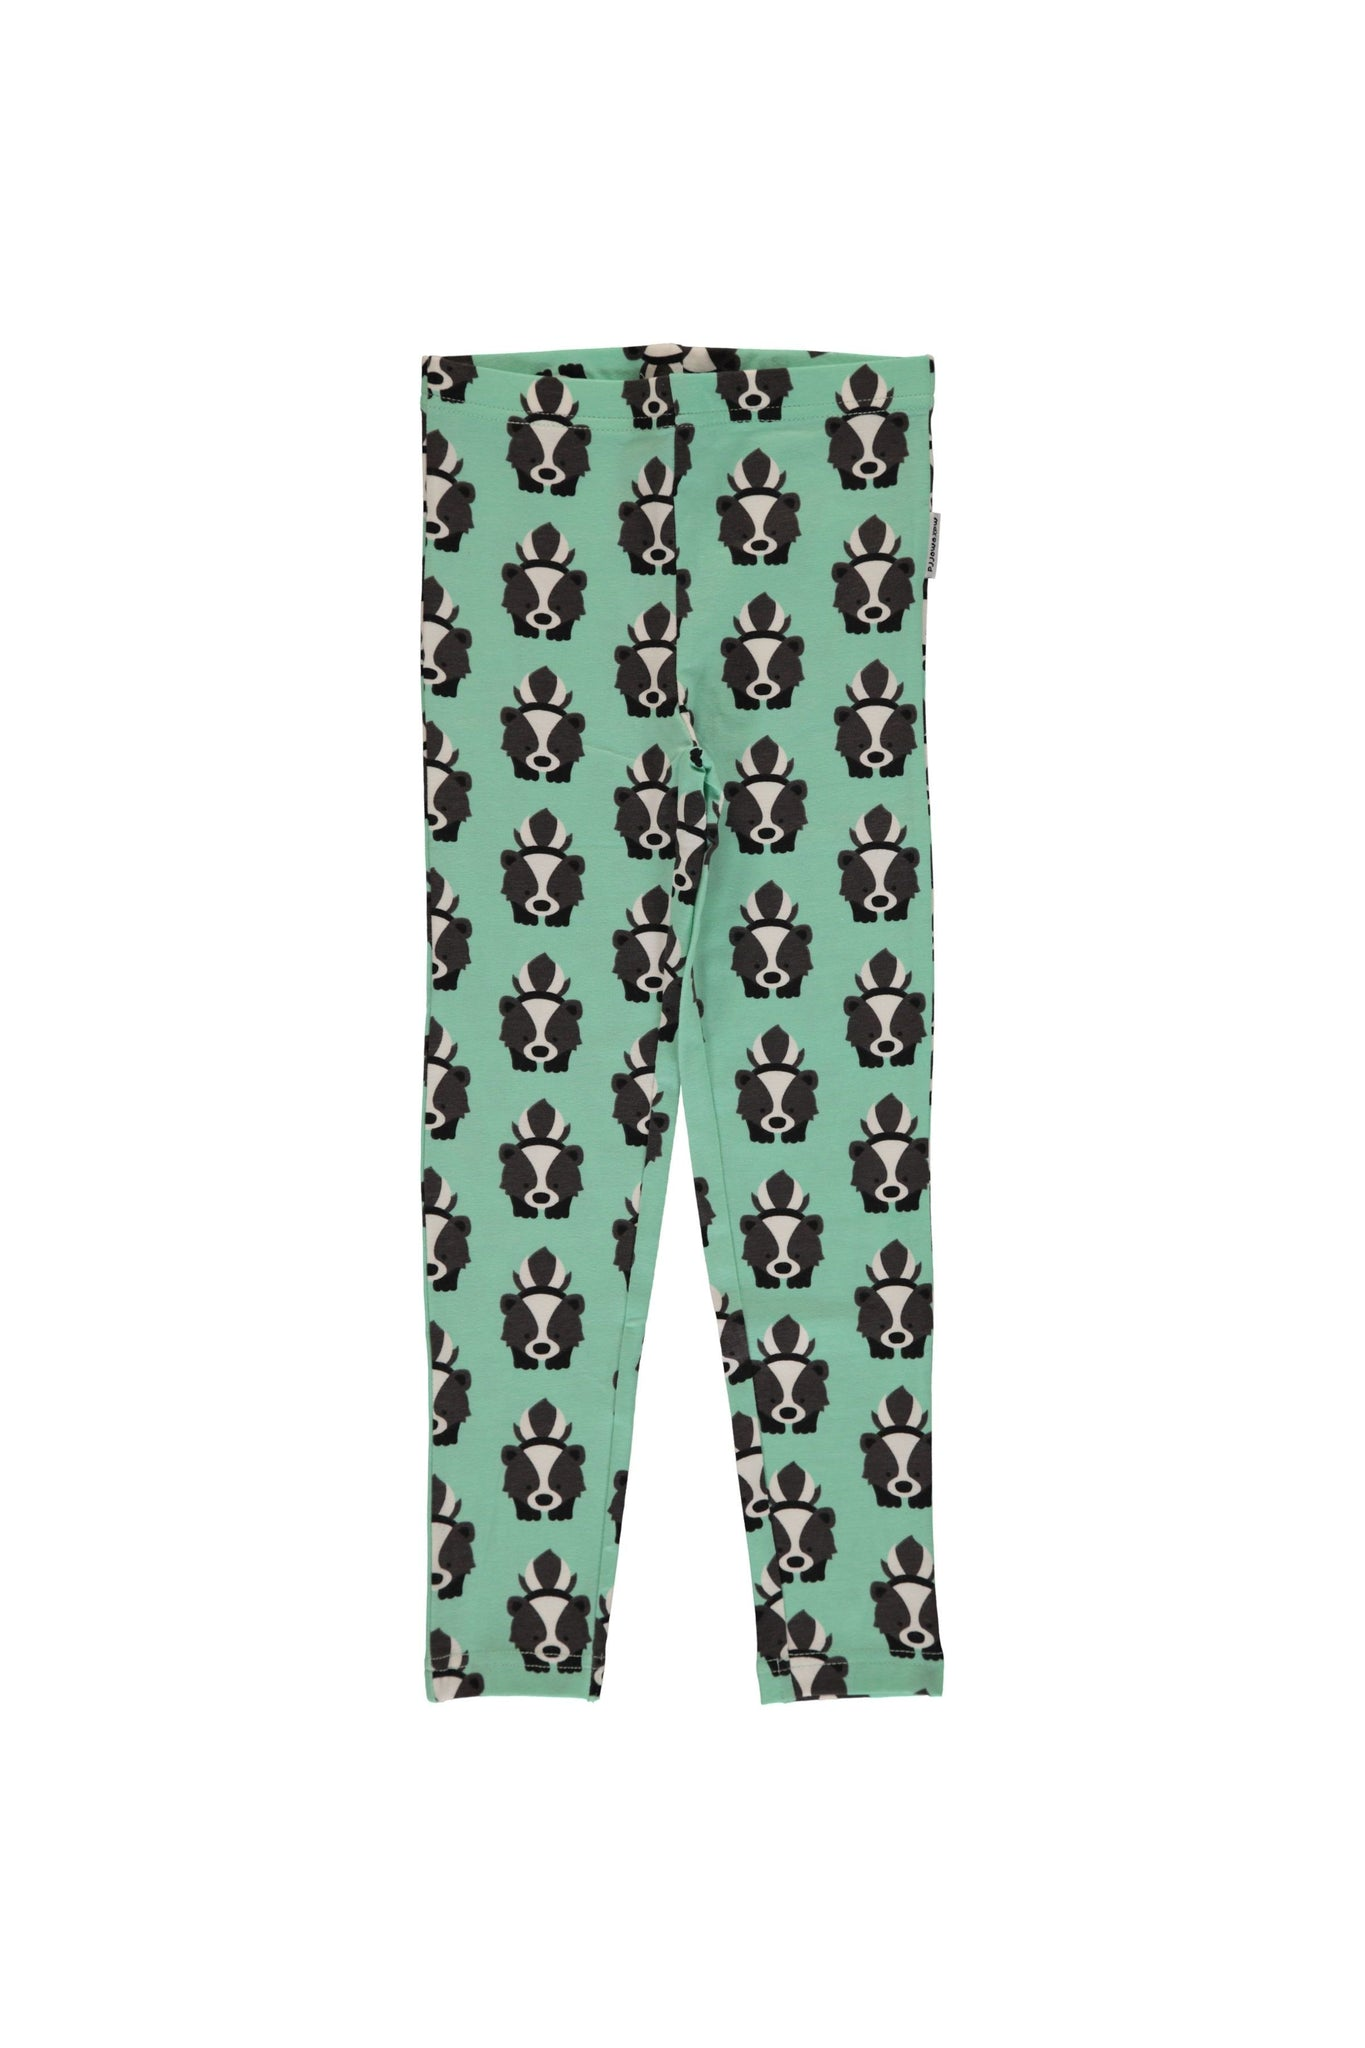 Skunk Leggings - Maxomorra  Fashion - Snugglefox